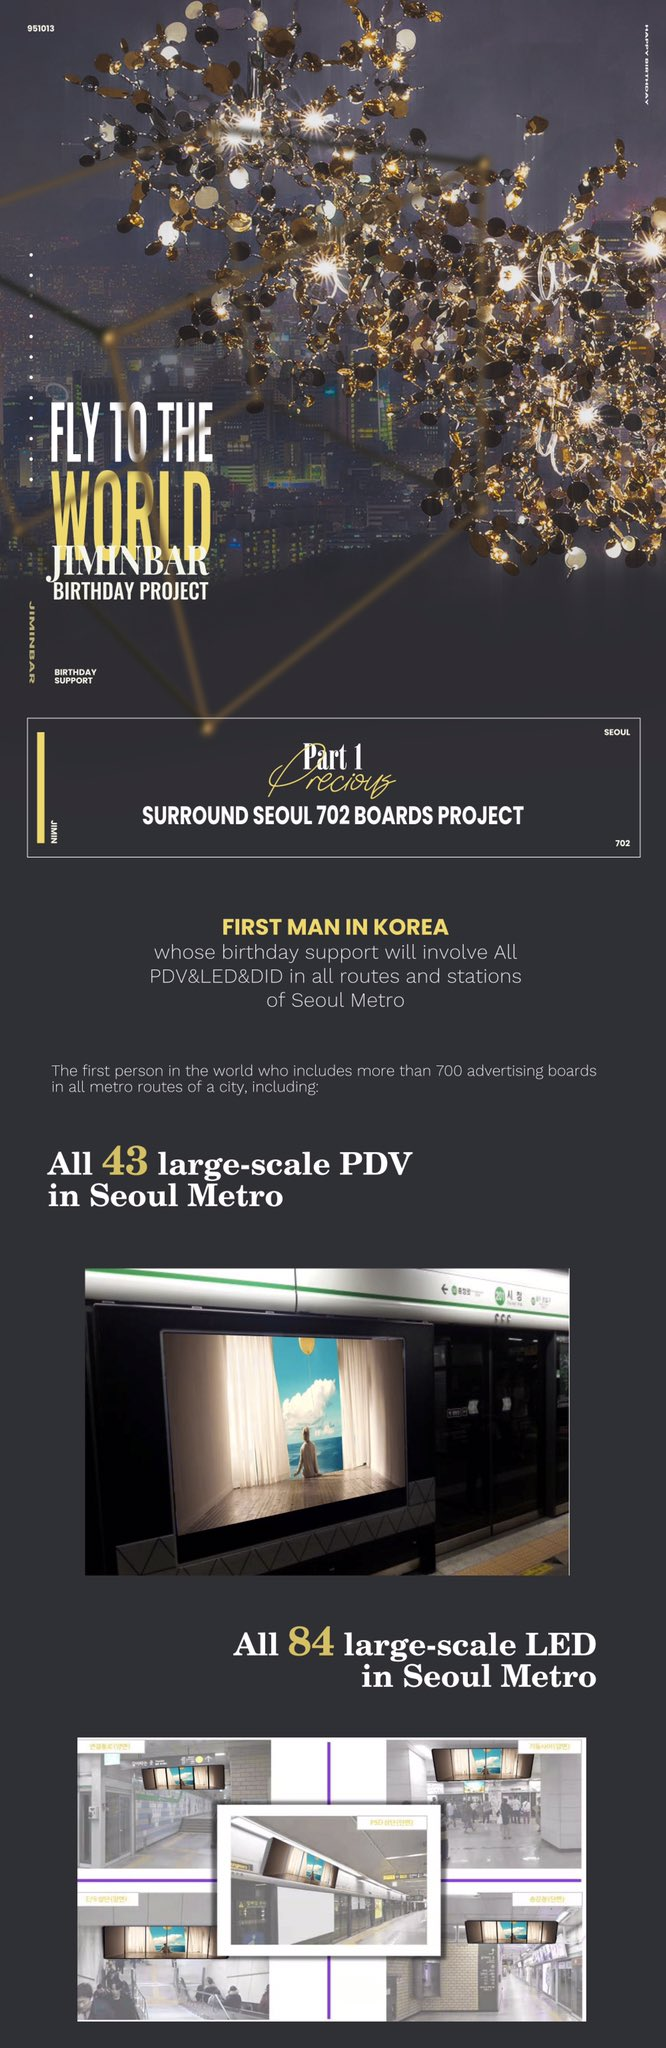 jimin bar china birthday subway 1